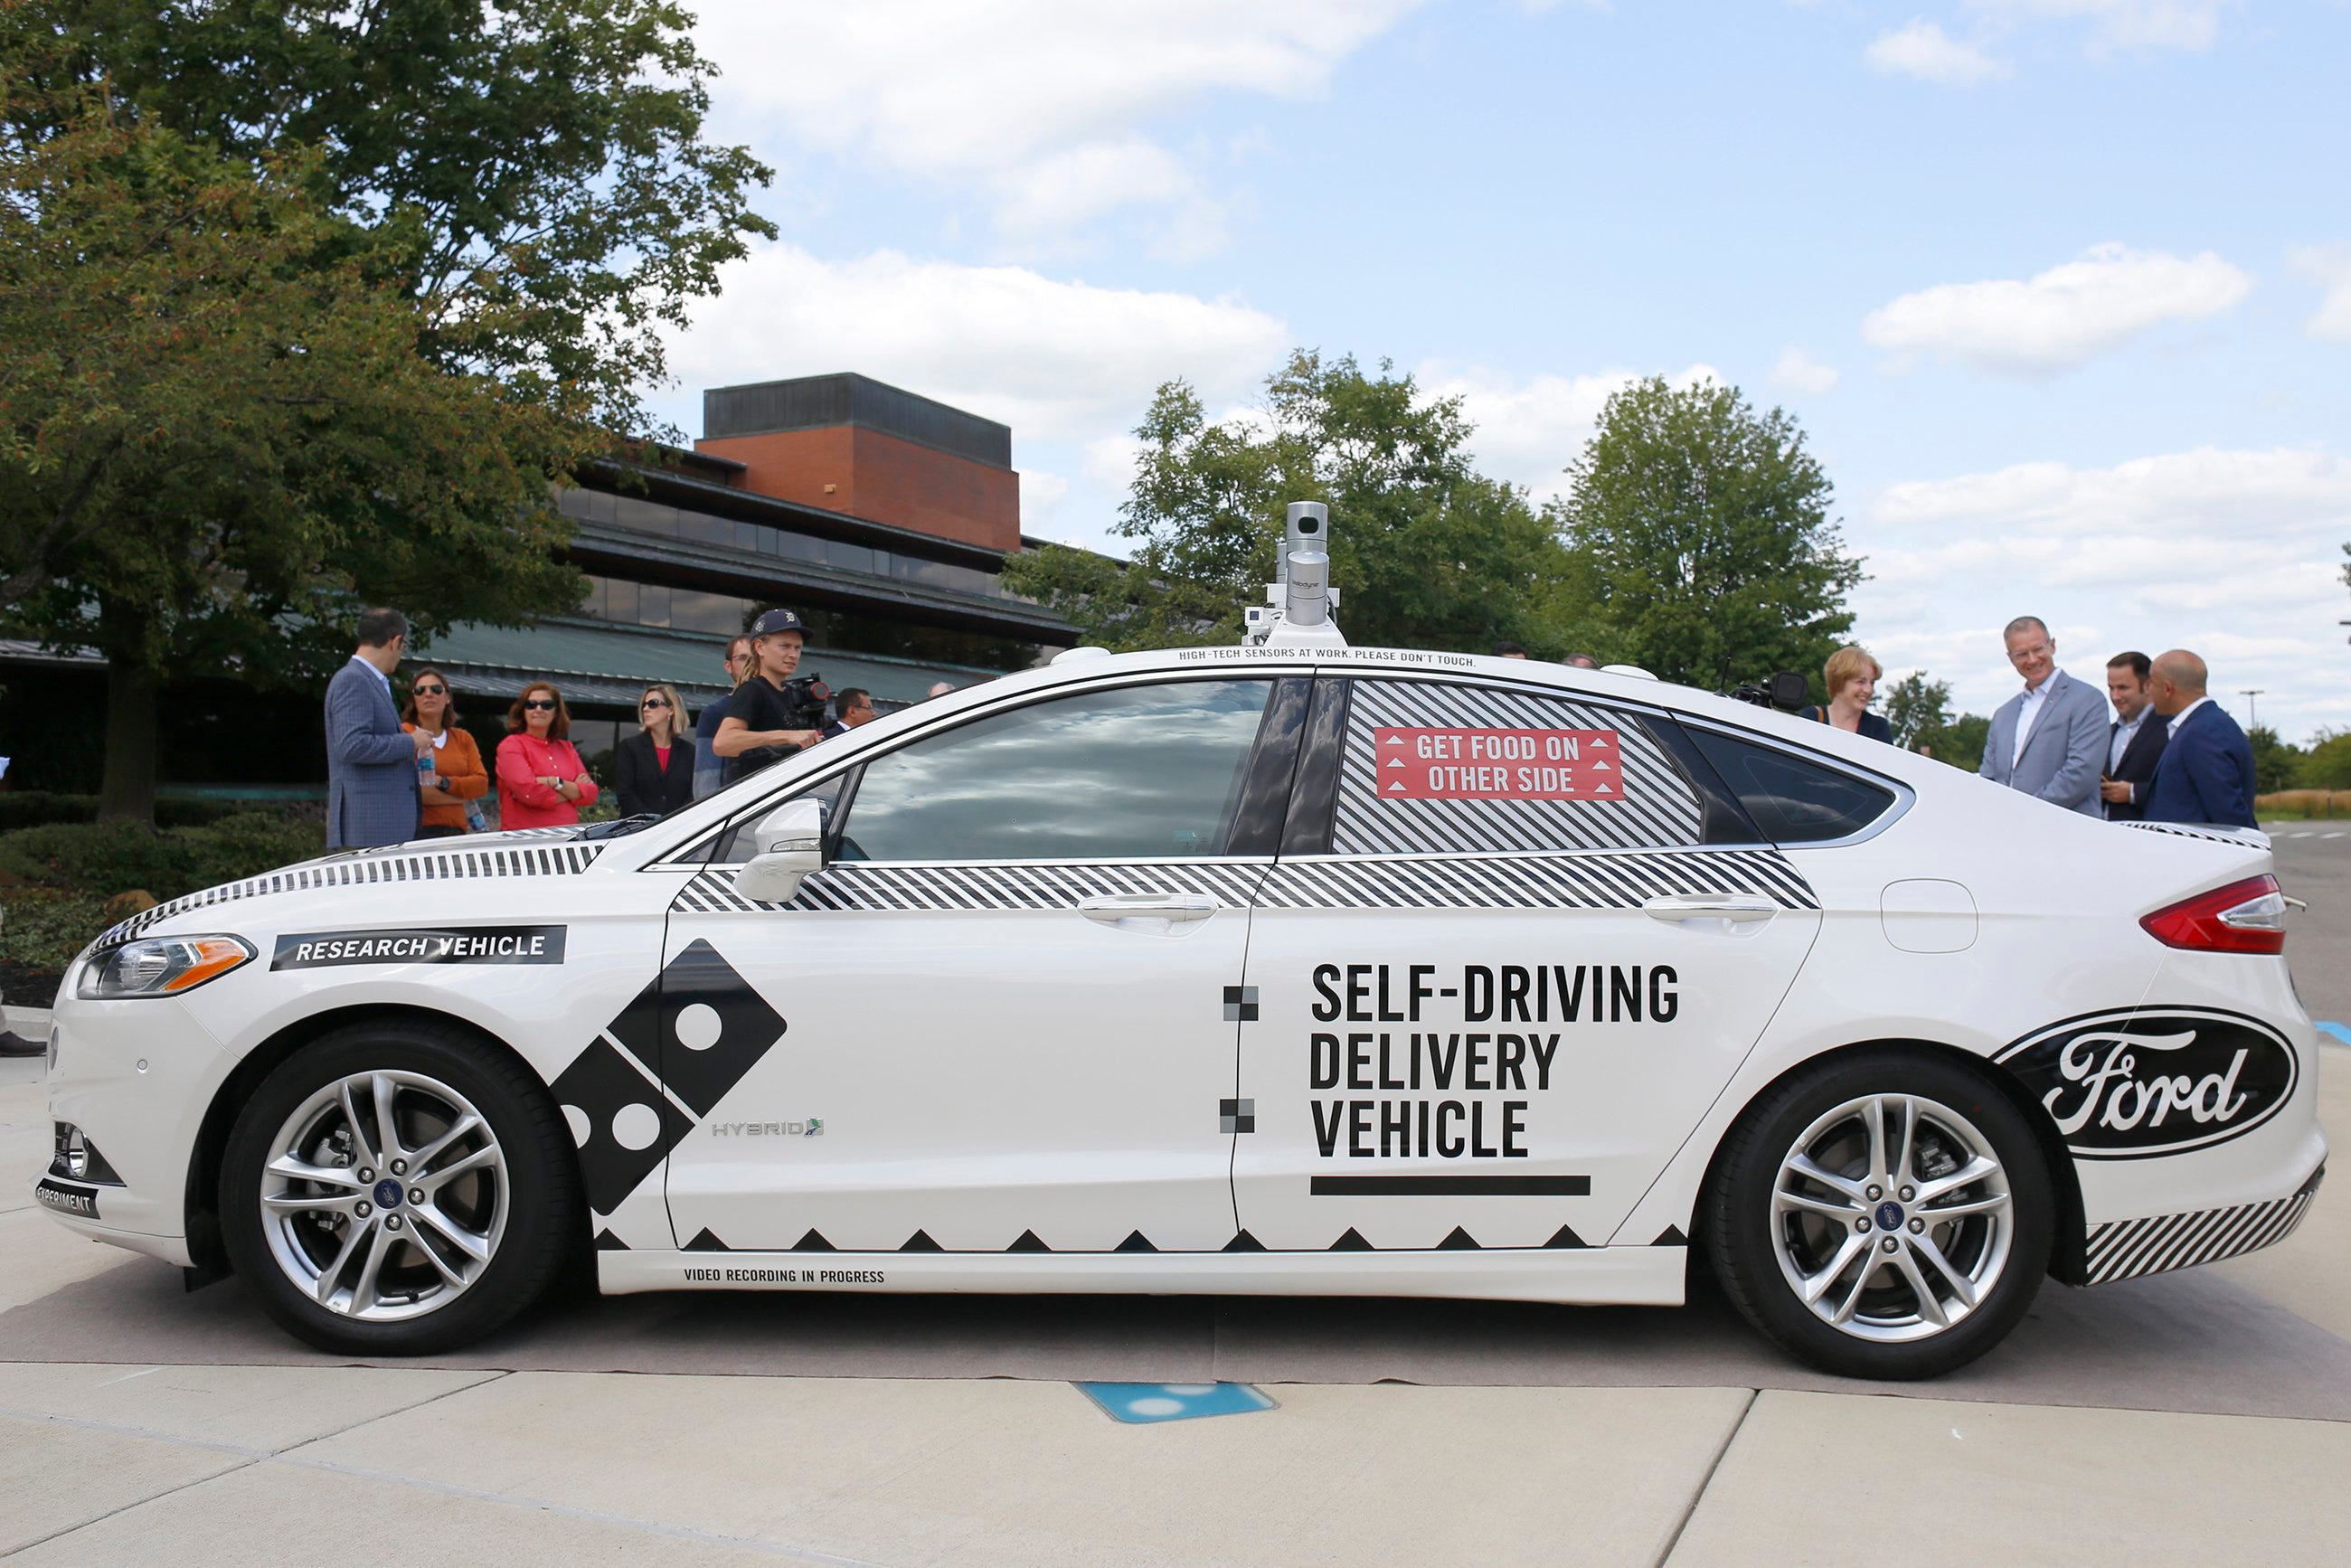 Domino\u0027s, Ford to test driverless pizza delivery in Ann Arbor